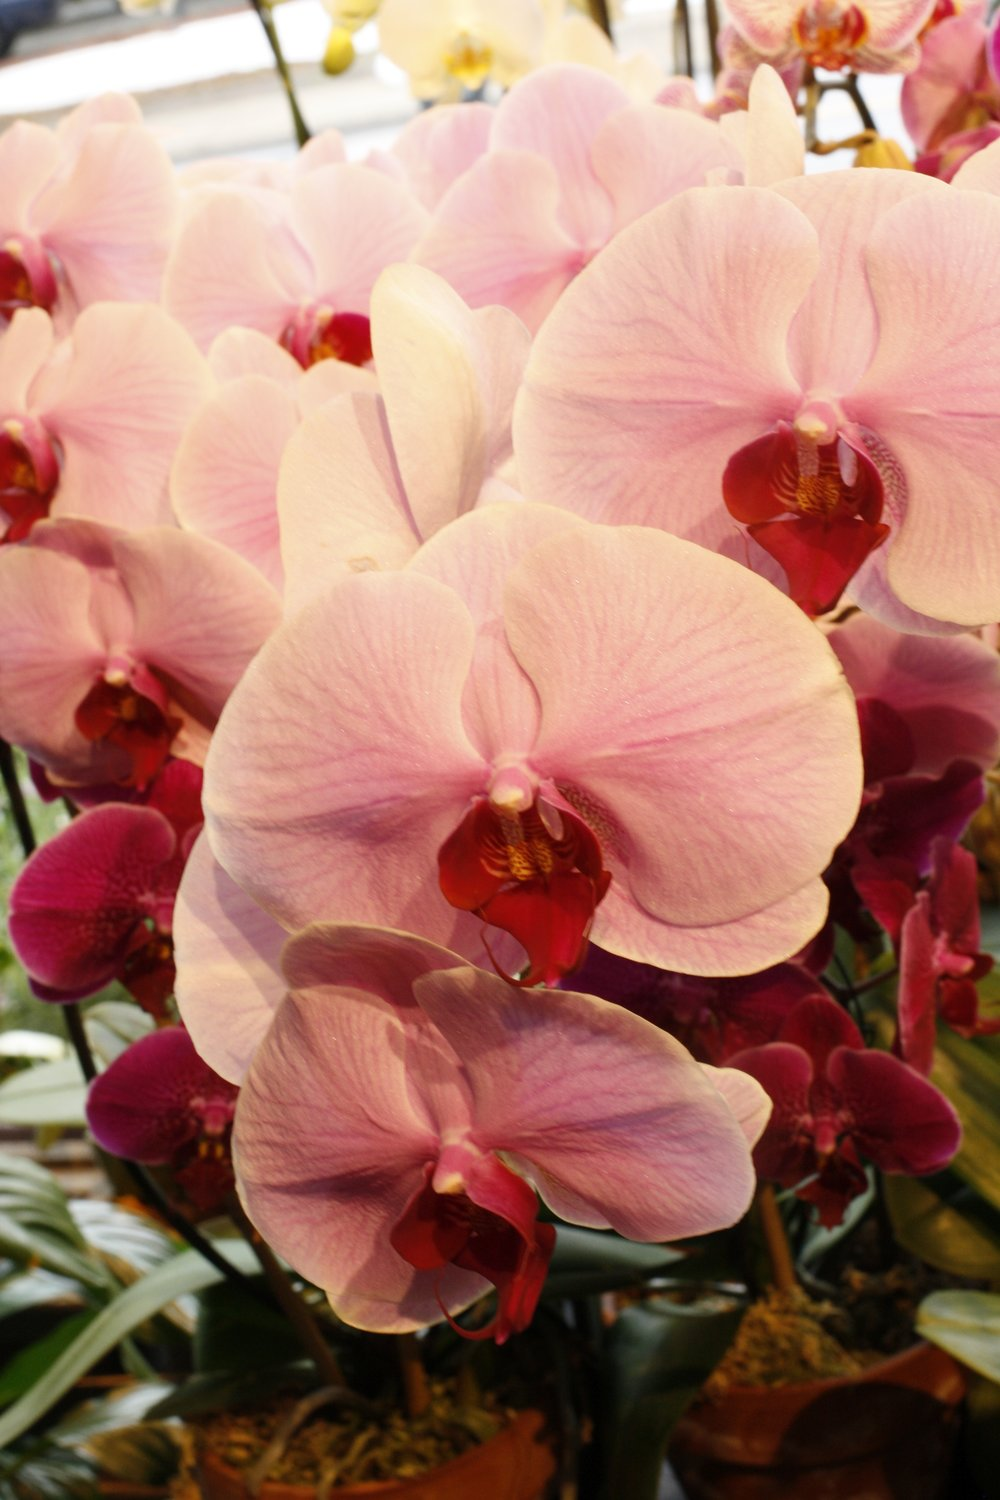 Peach phaleonopsis orchid with red throat